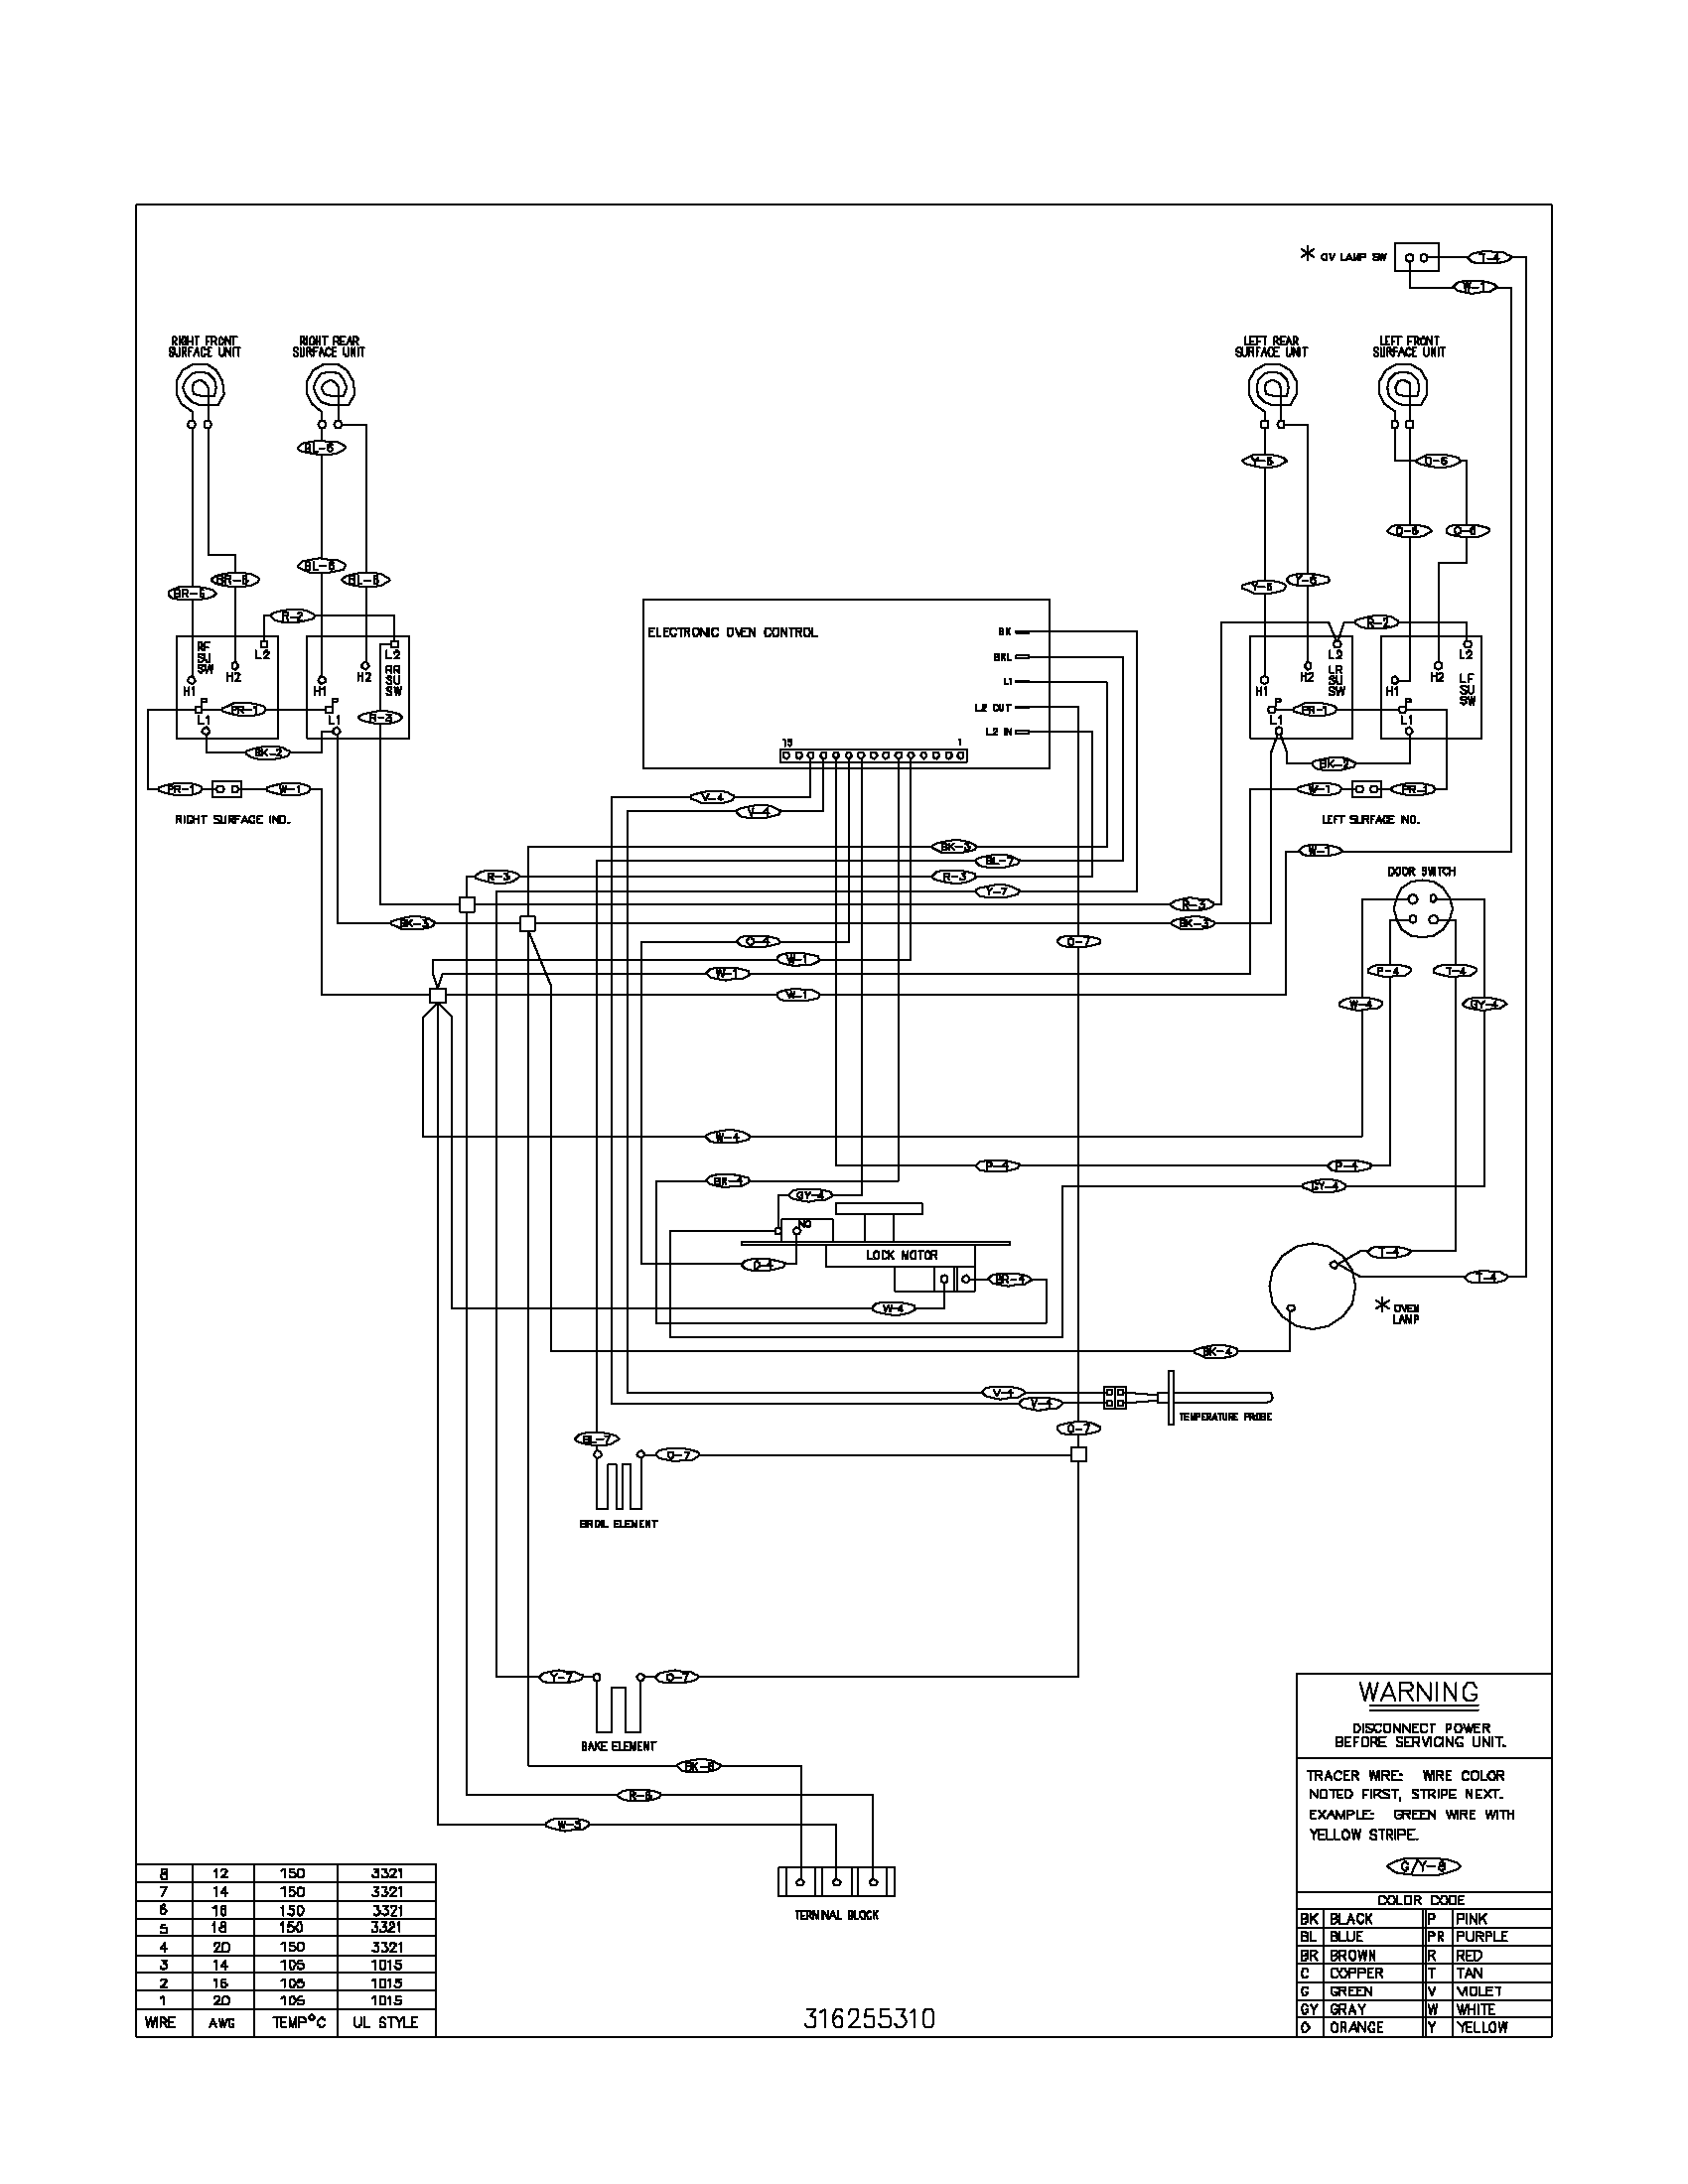 wiring diagram parts frigidaire fef352asf electric range timer stove clocks and frigidaire refrigerator wiring schematic at eliteediting.co